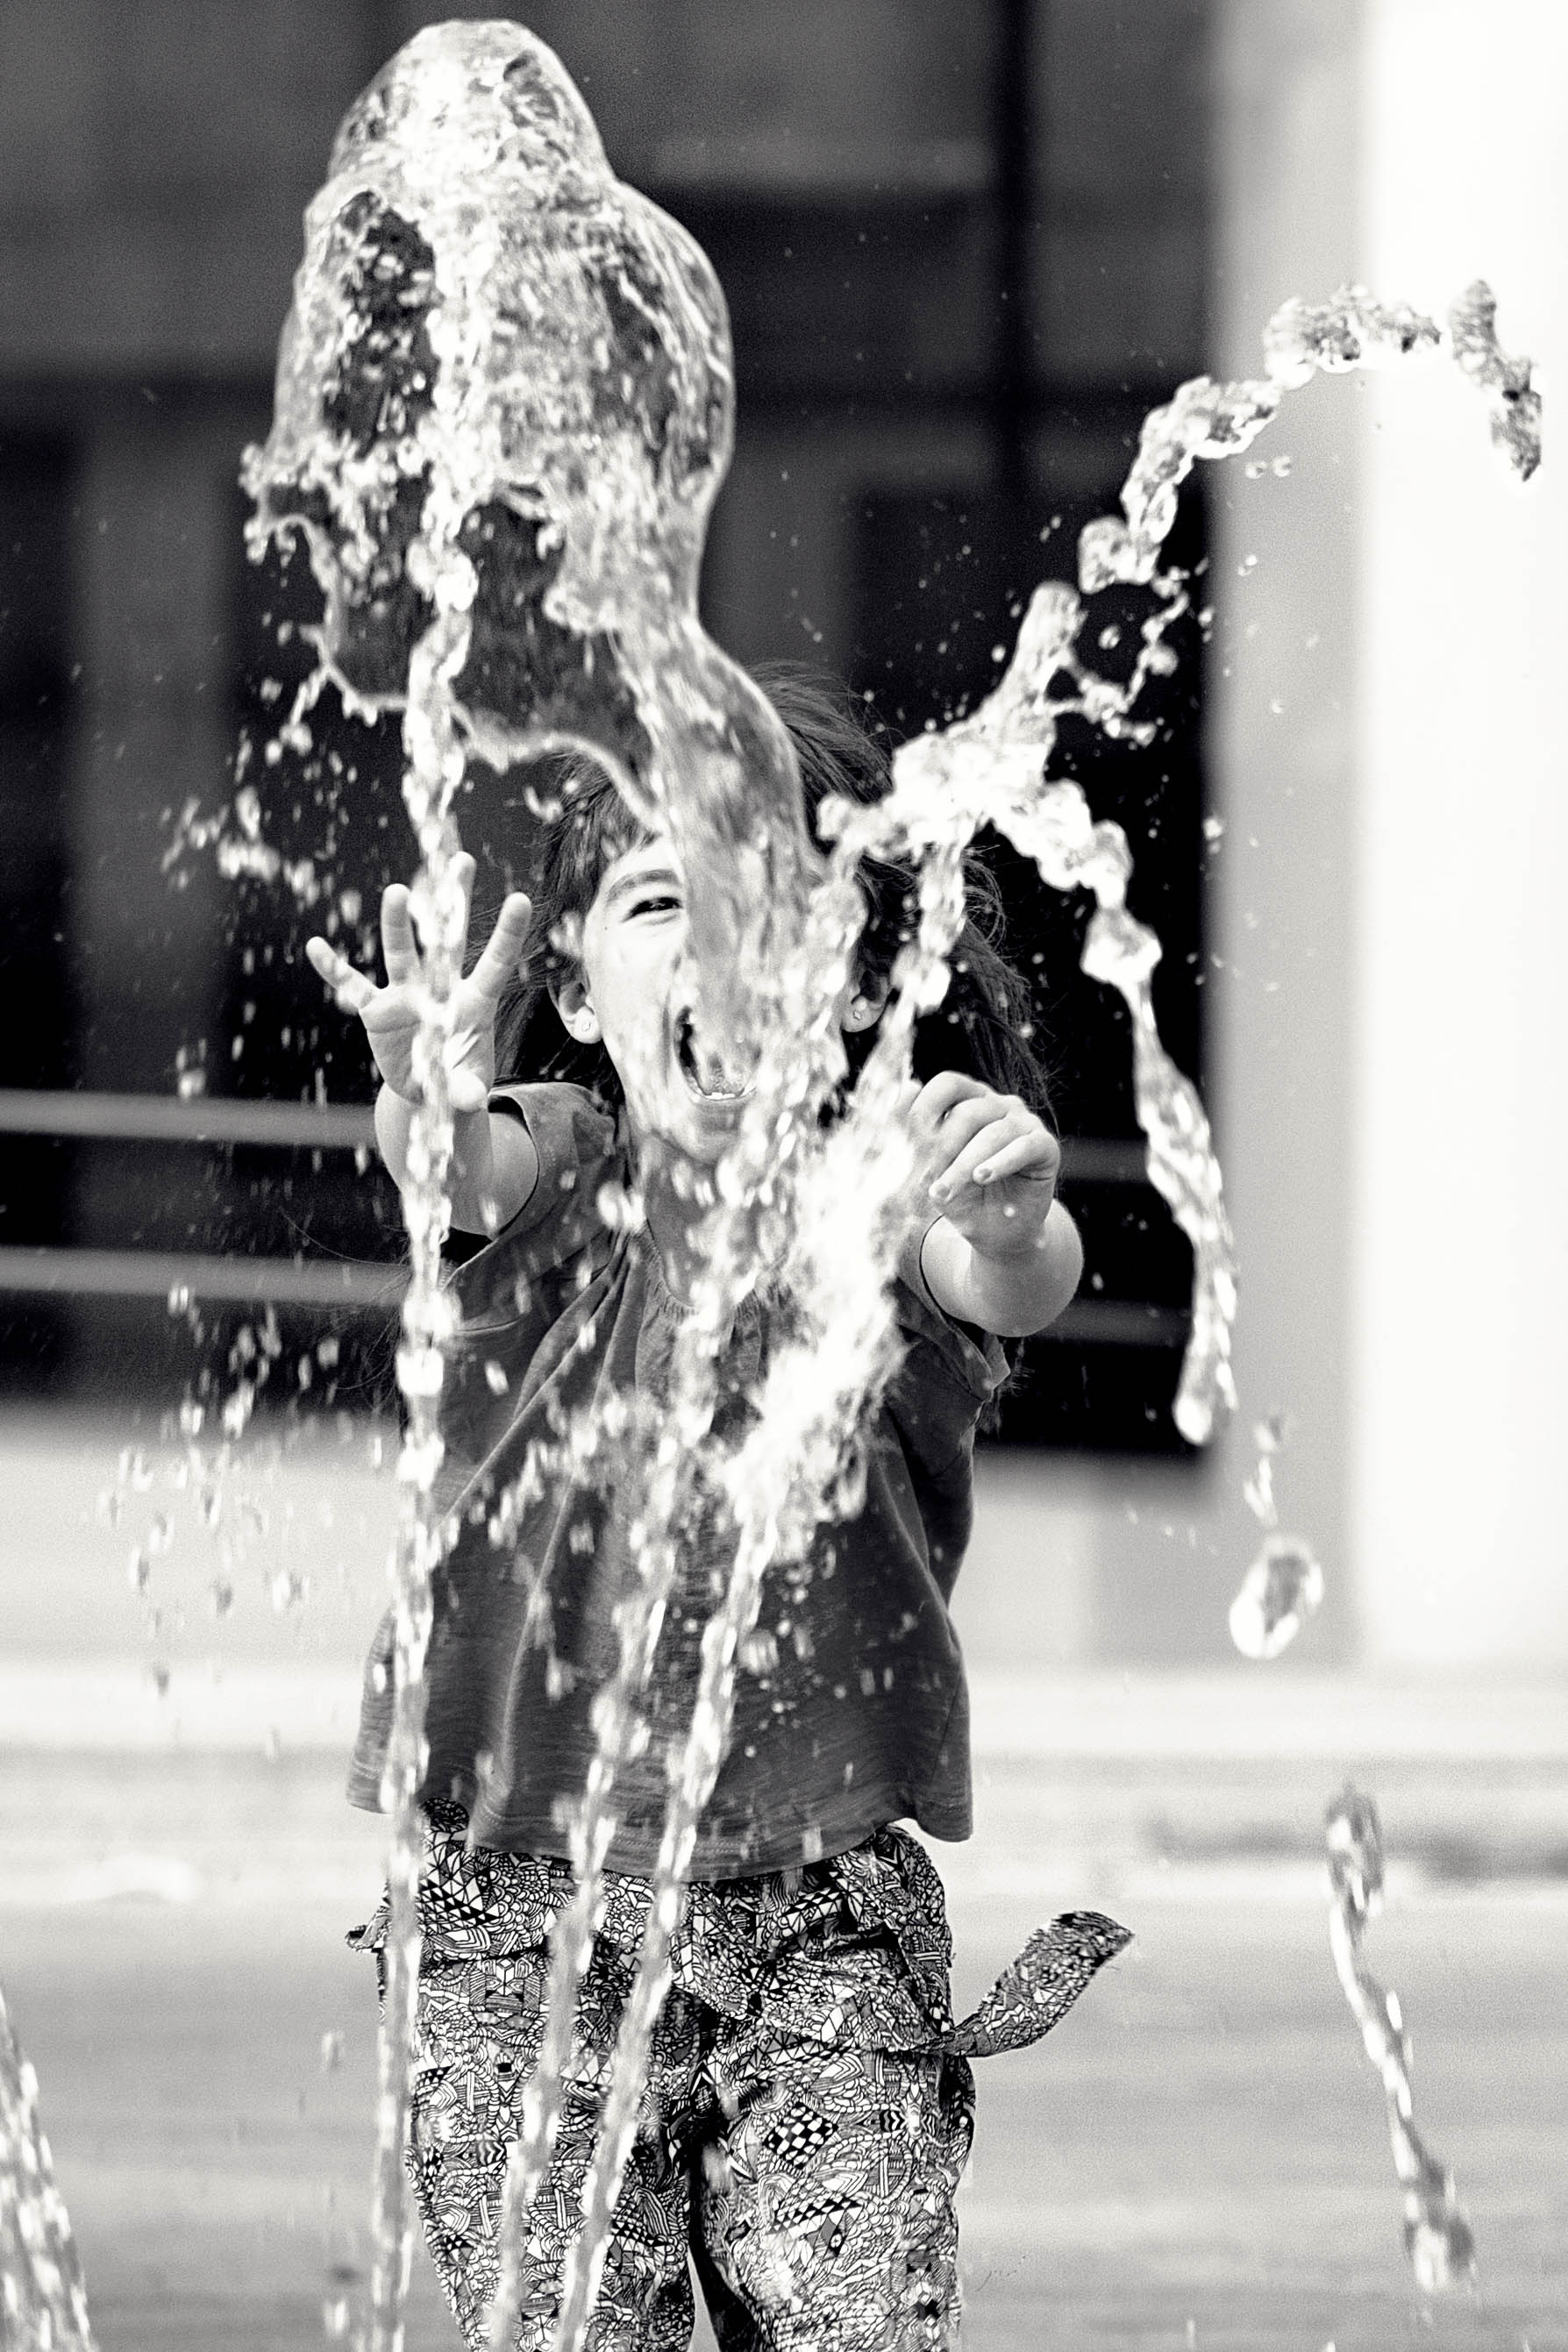 street photography girl fun fountain black and white bnw